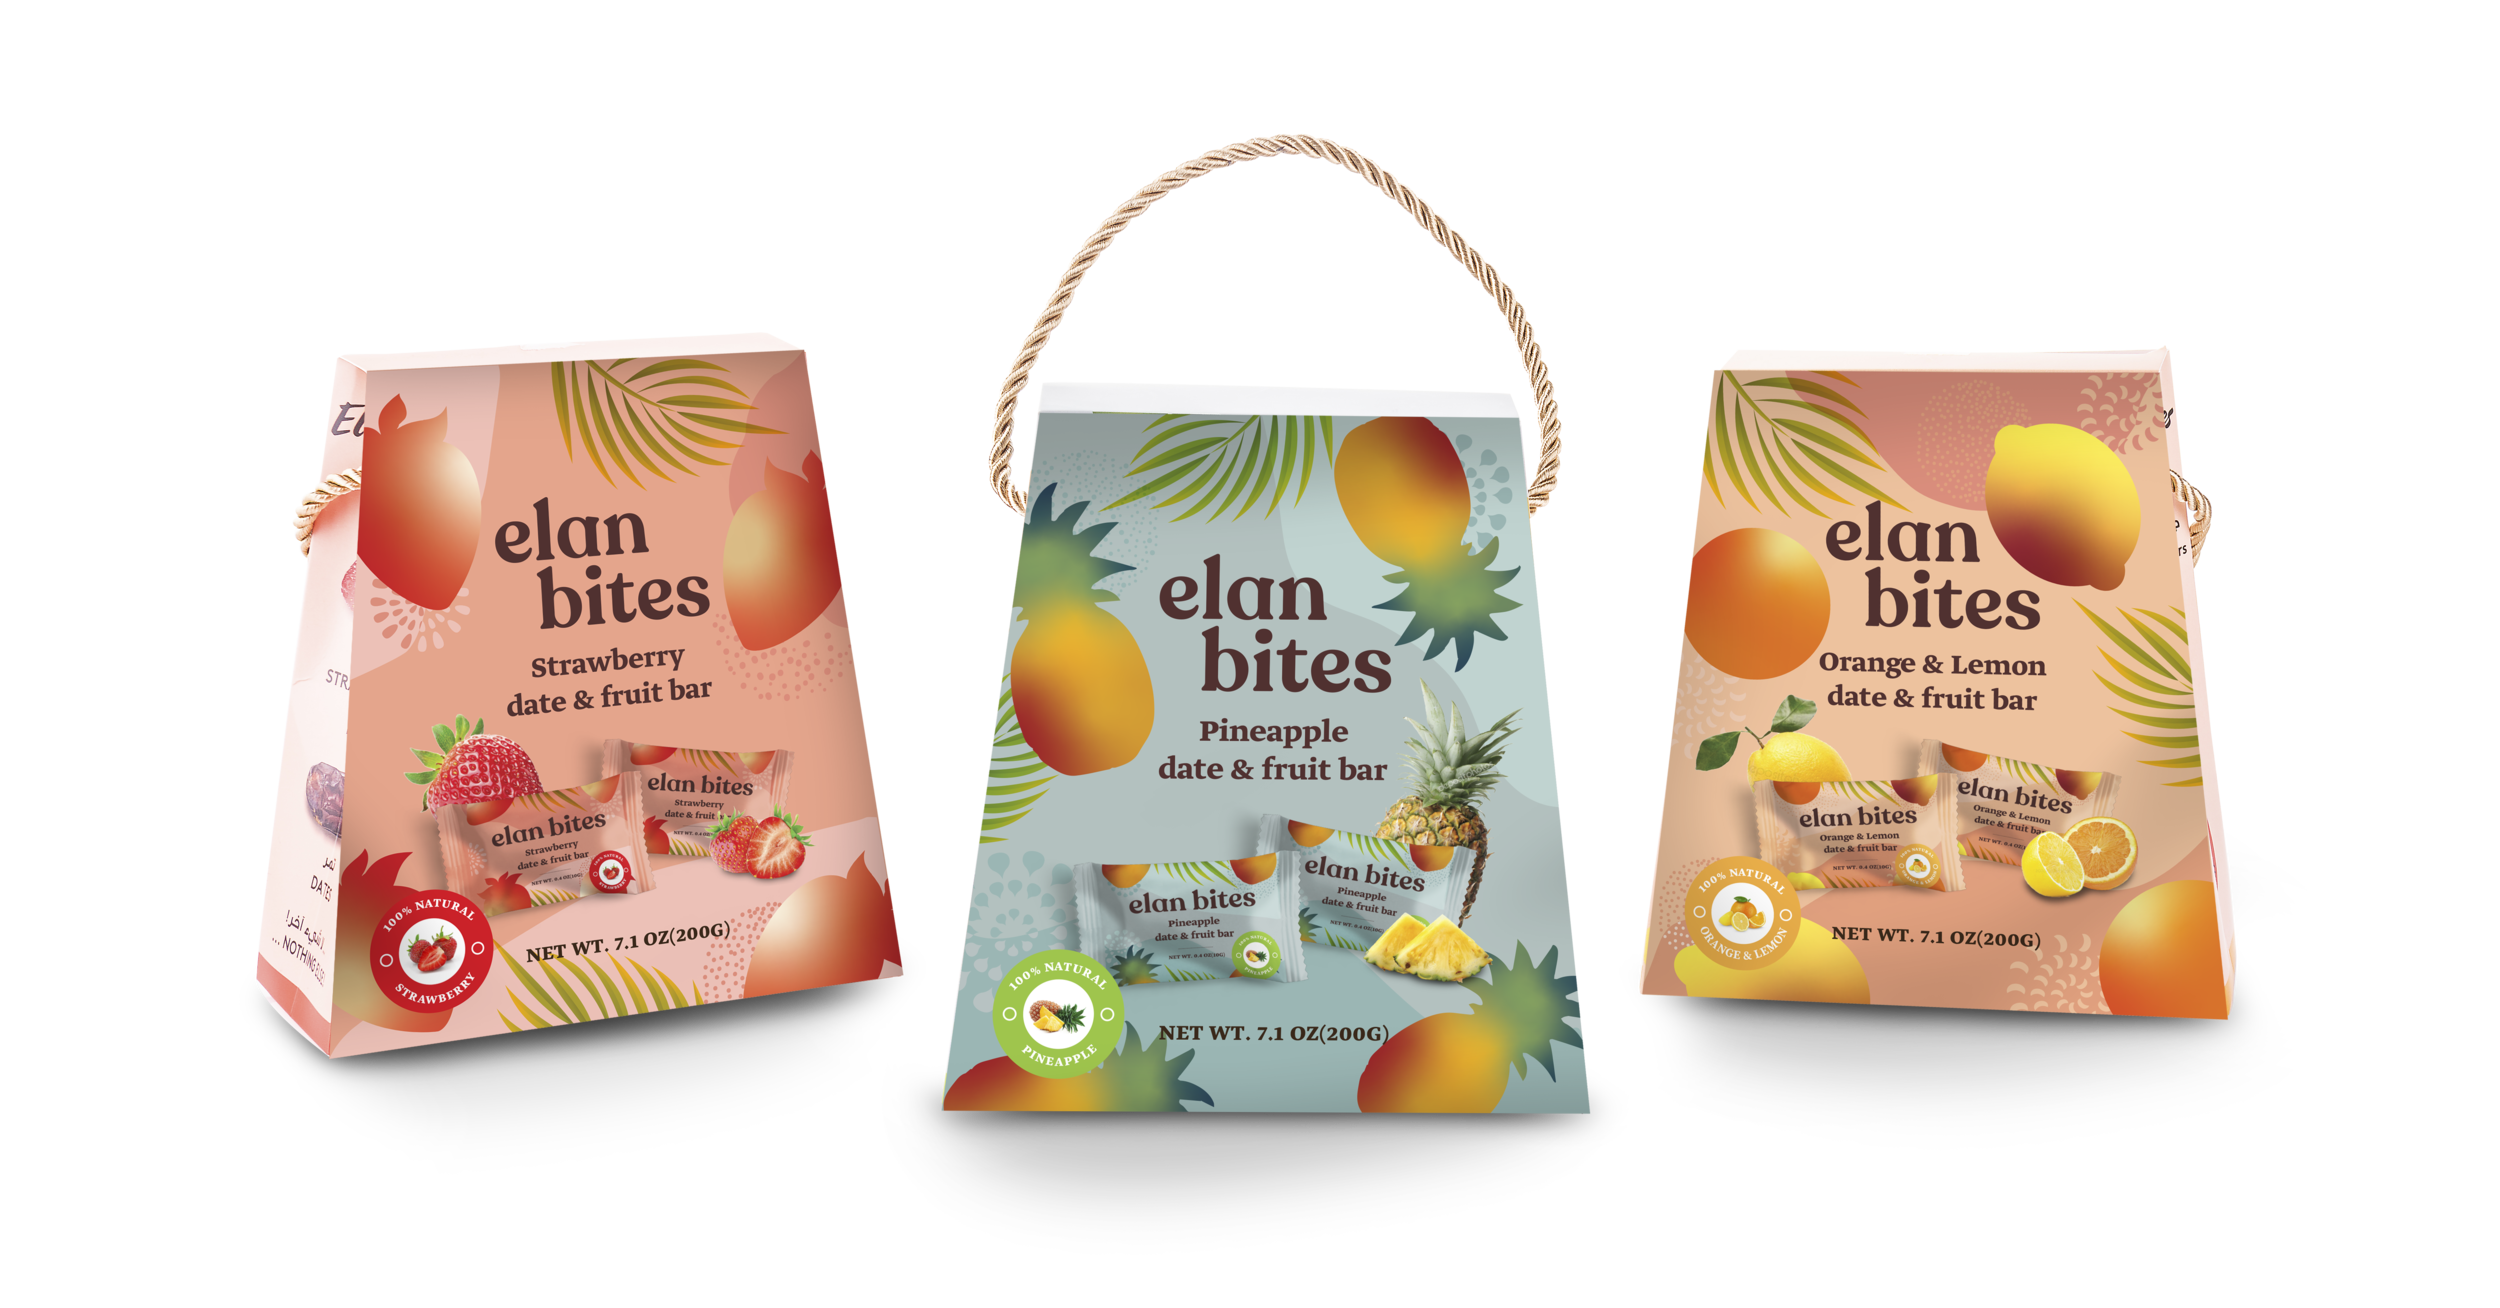 Bite-sized date & fruit bar packs - Each paper pouch contains 20 date & fruit bars in individually packed 10g wrappers, to ensure freshness and good taste.